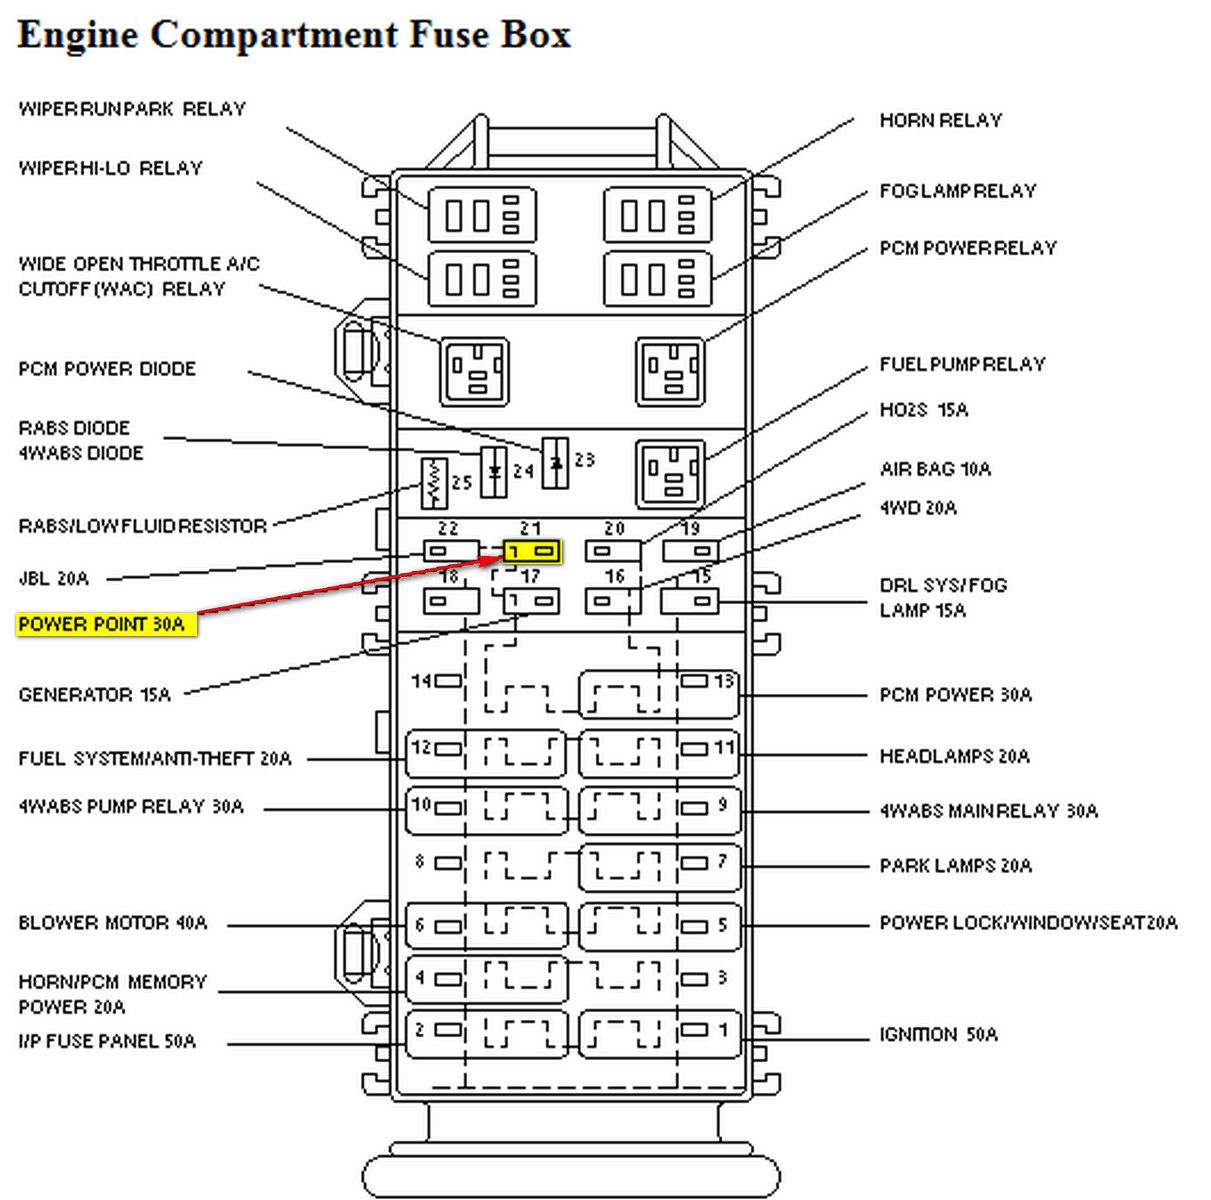 97 F350 Fuse Box Diagram Wiring Library 1996 Ford Super Duty 1997 Ranger Truck Part Diagrams